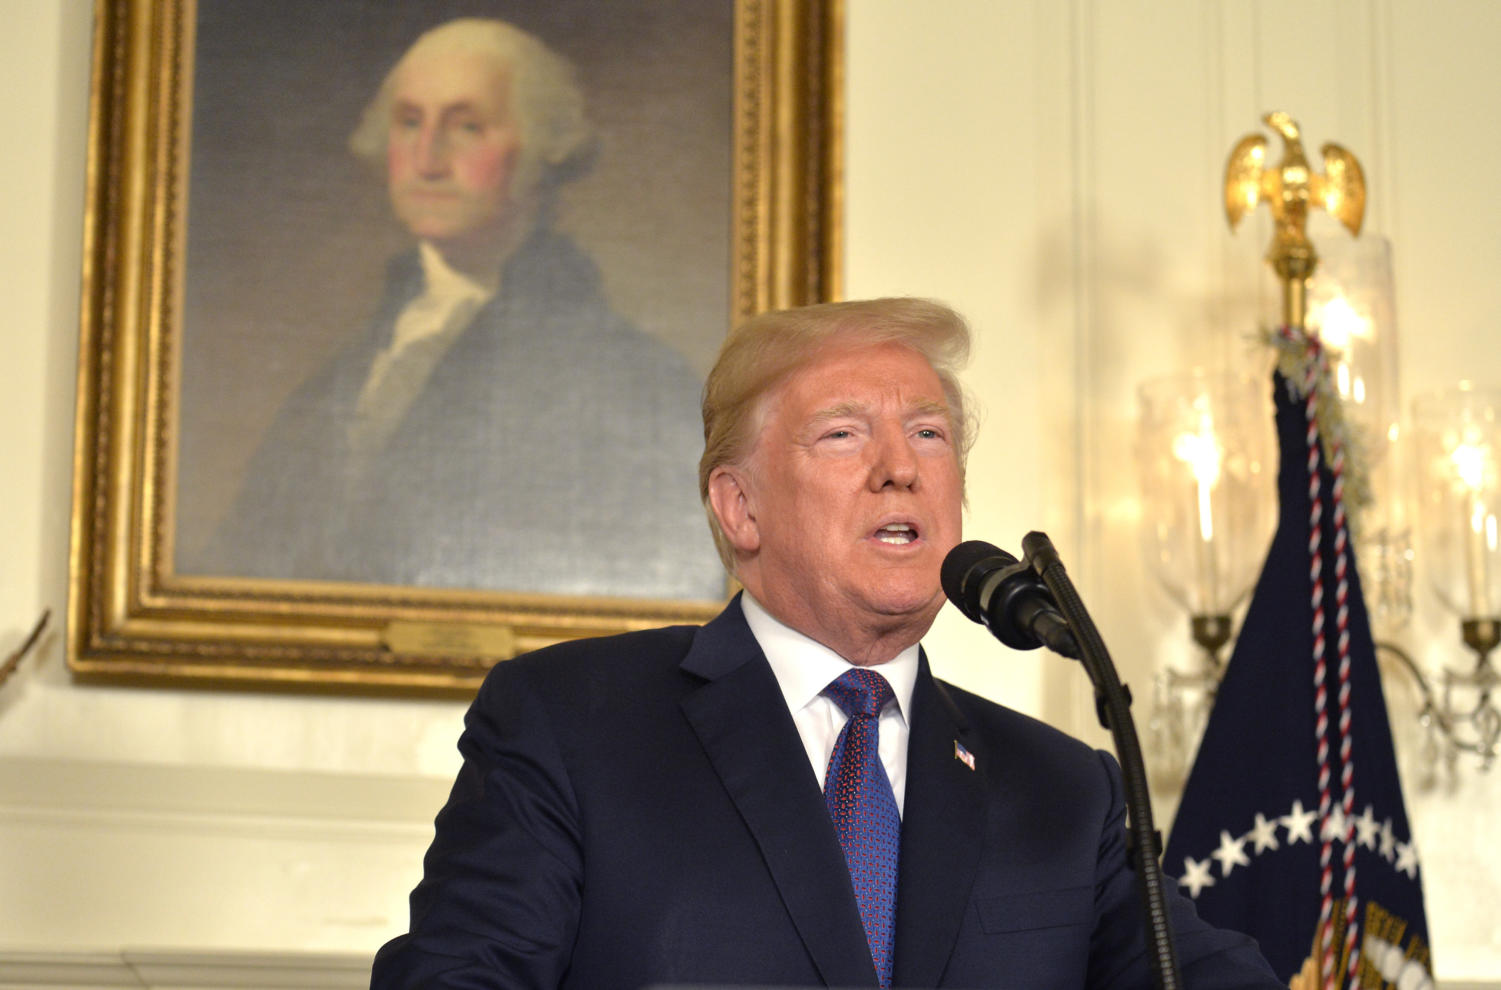 President Donald Trump announces military action against Syria for the recent gas attack on civilians, at the White House in Washington, D.C., on Friday, April 13, 2018. (Mike Theiler/Sipa USA/TNS)